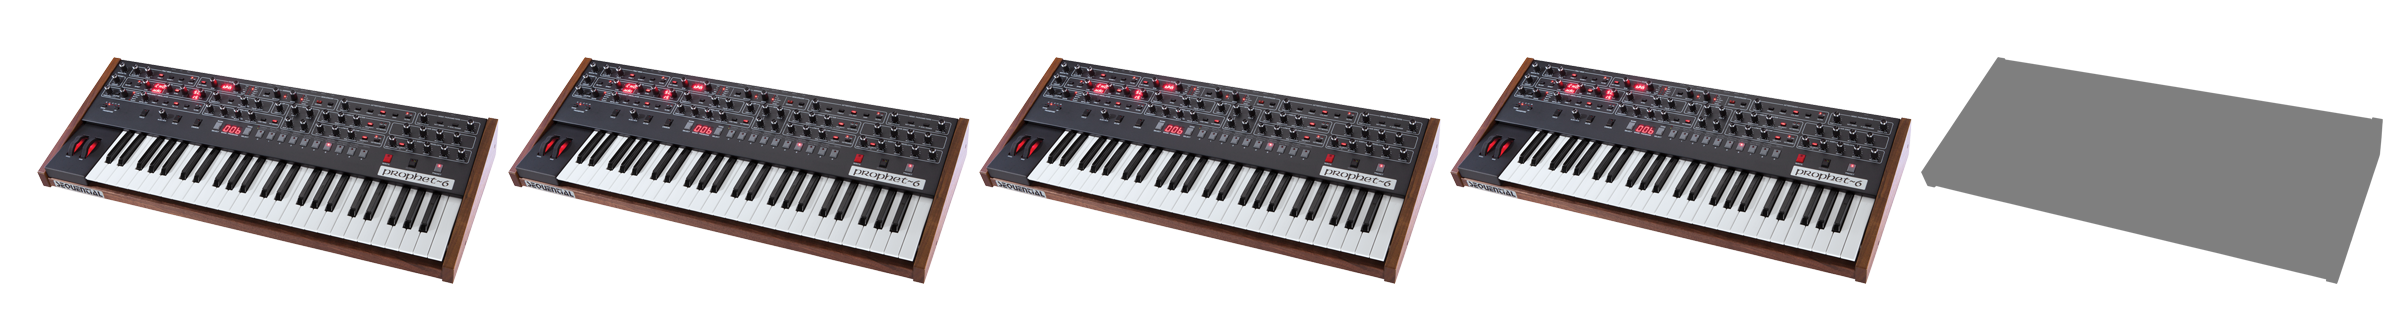 synth keyboards